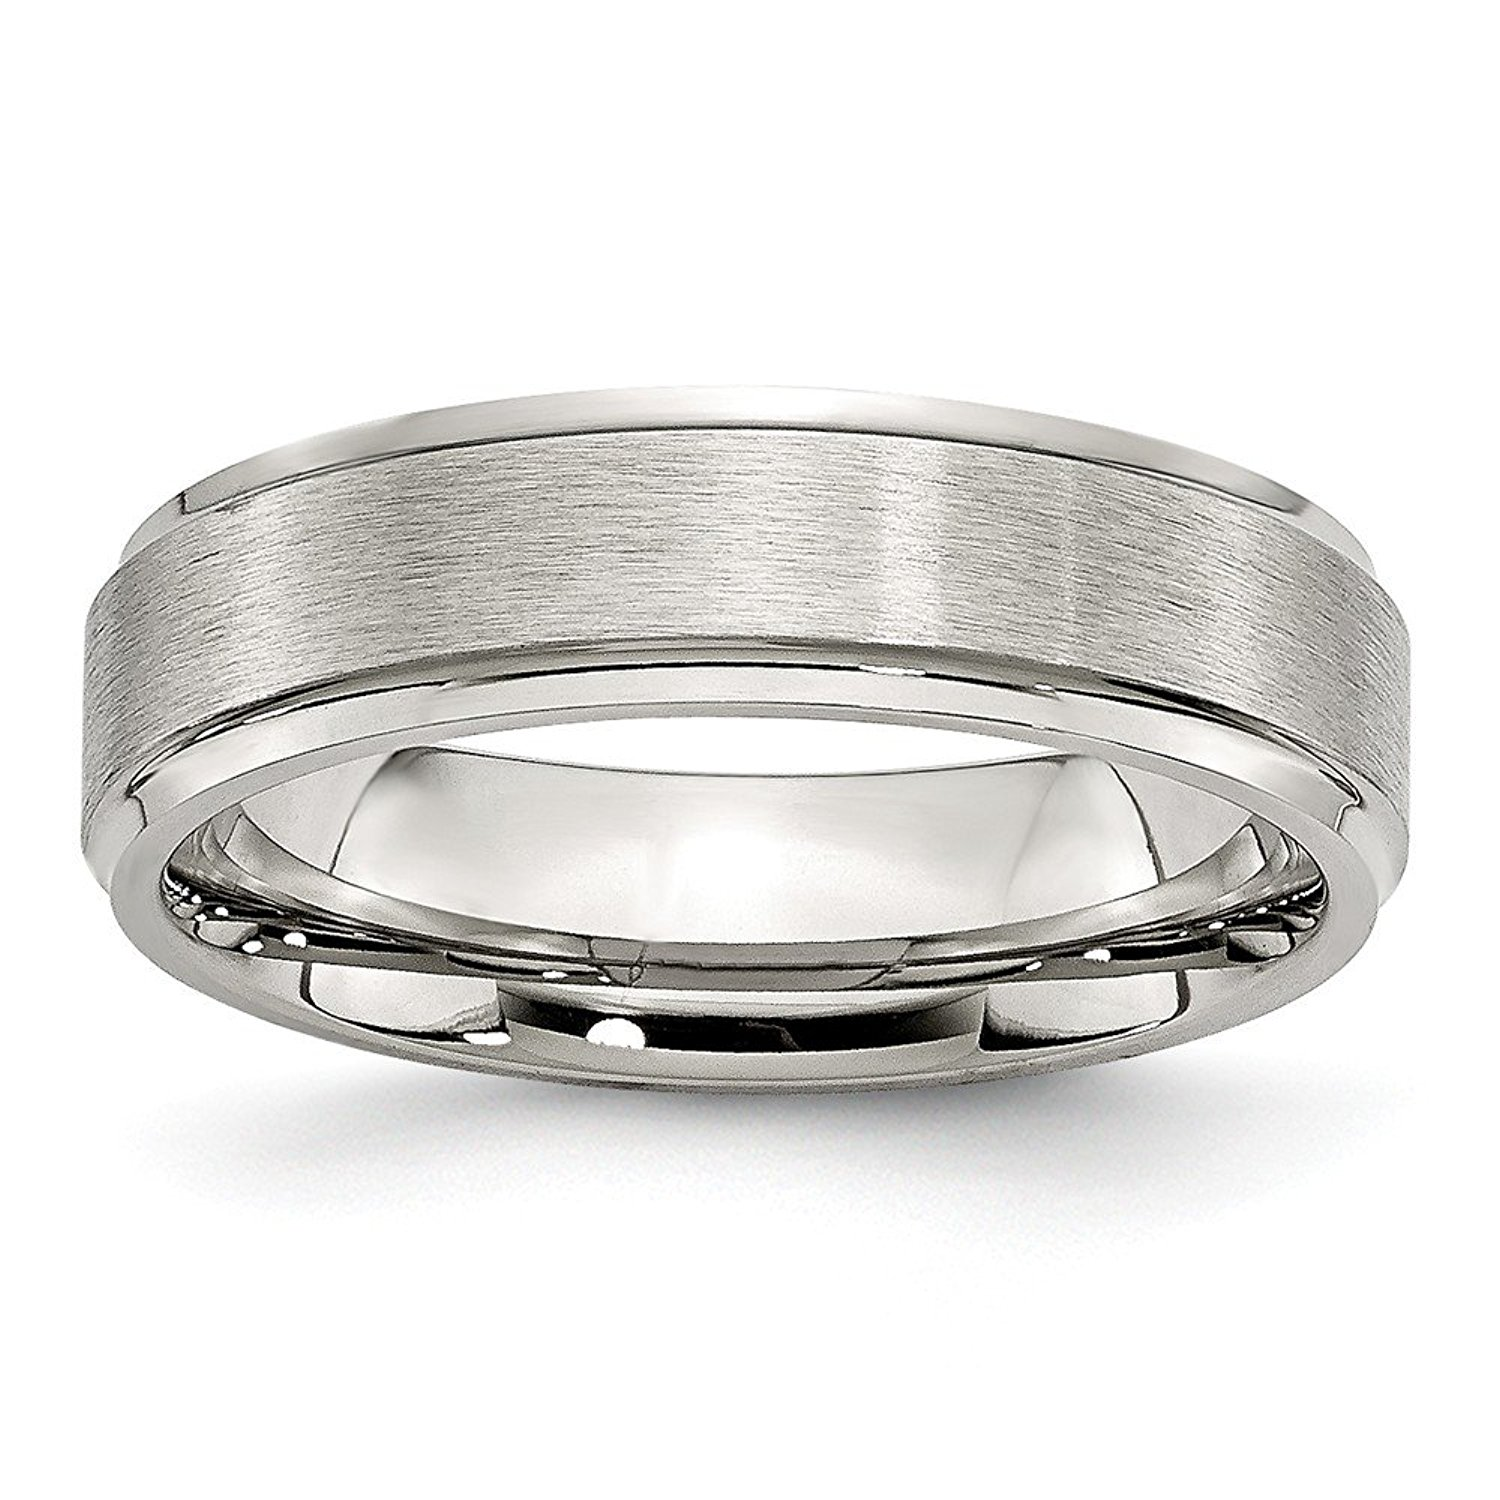 Best Quality Free Gift Box Titanium Grooved 8mm Brushed And Polished Band